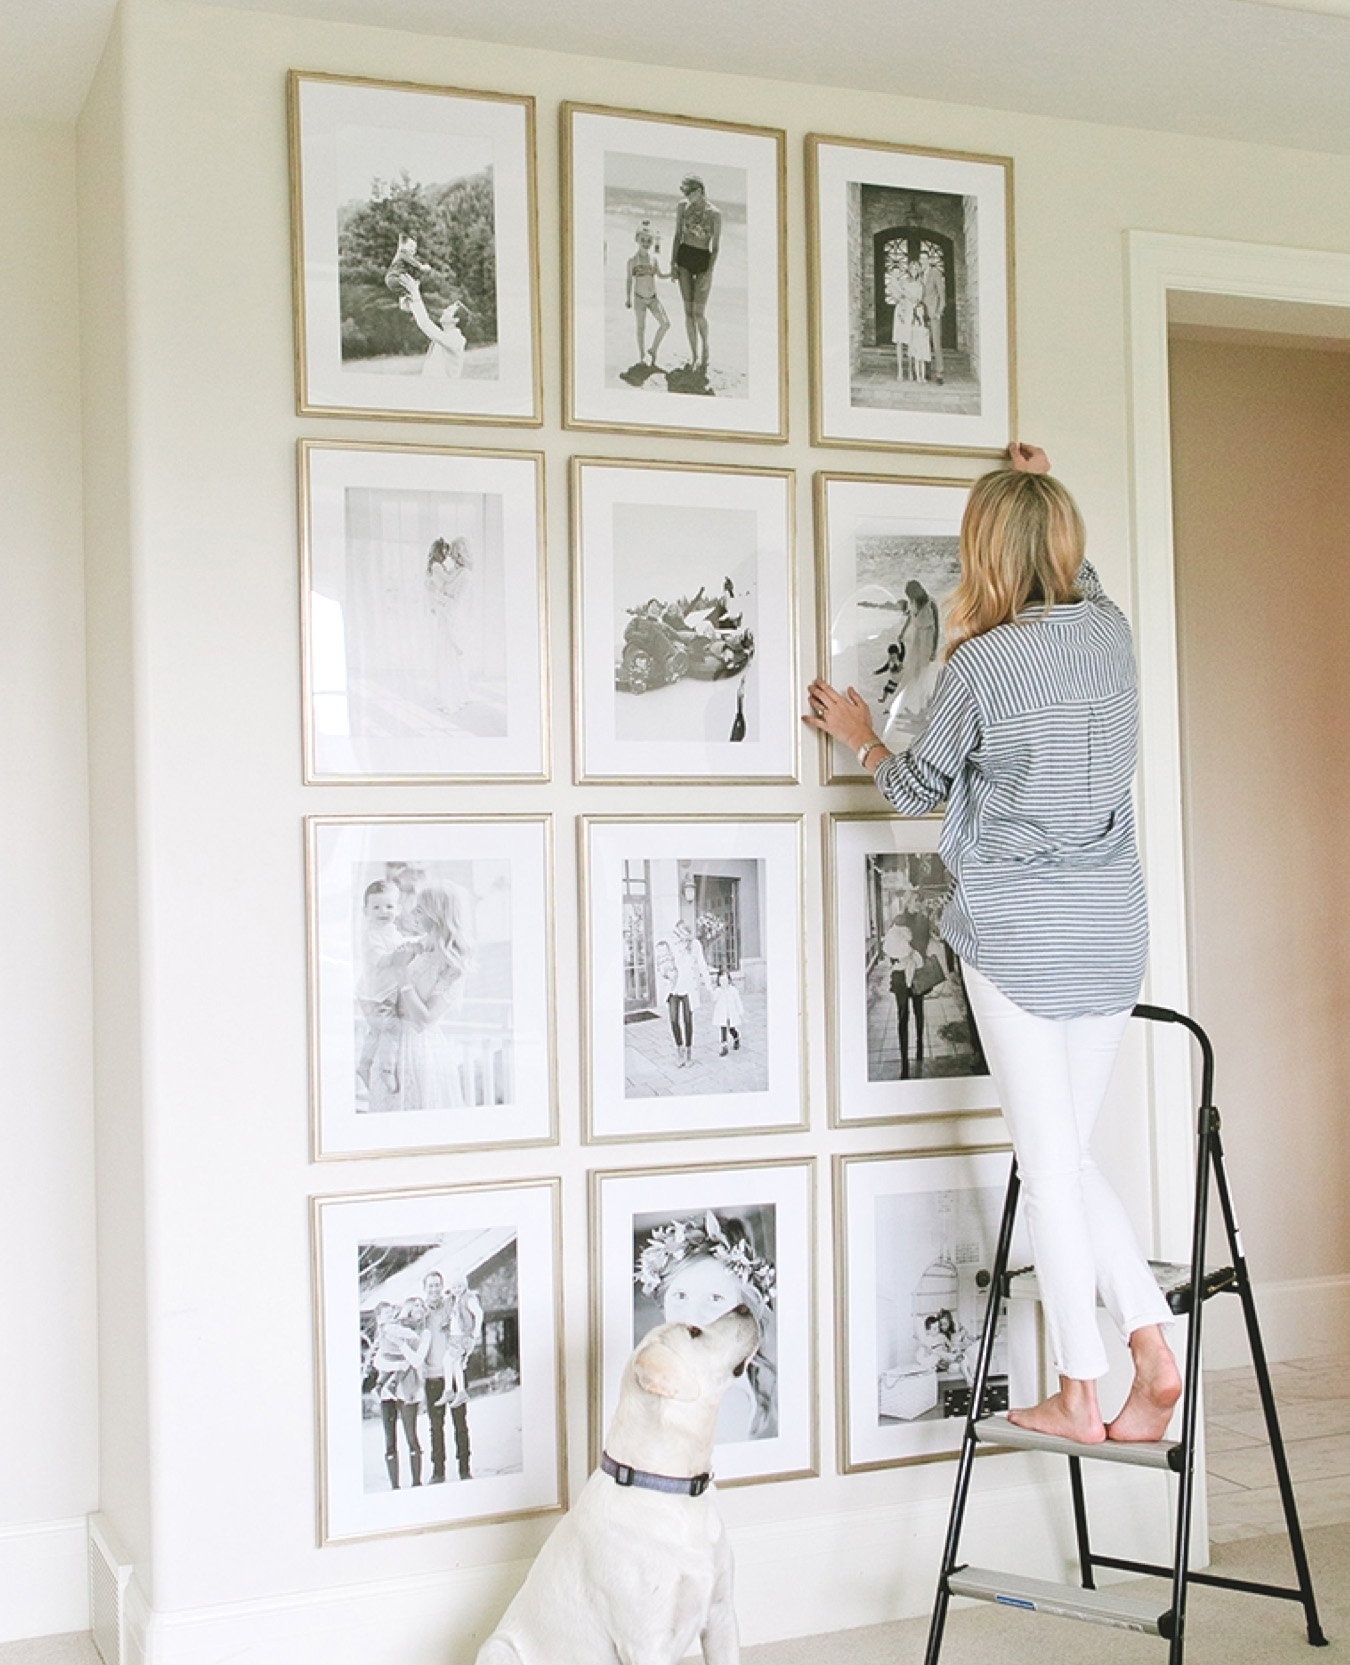 get ways wall gallery made emily bridge ready blog mats oversized gif mat to henderson frame you two frames